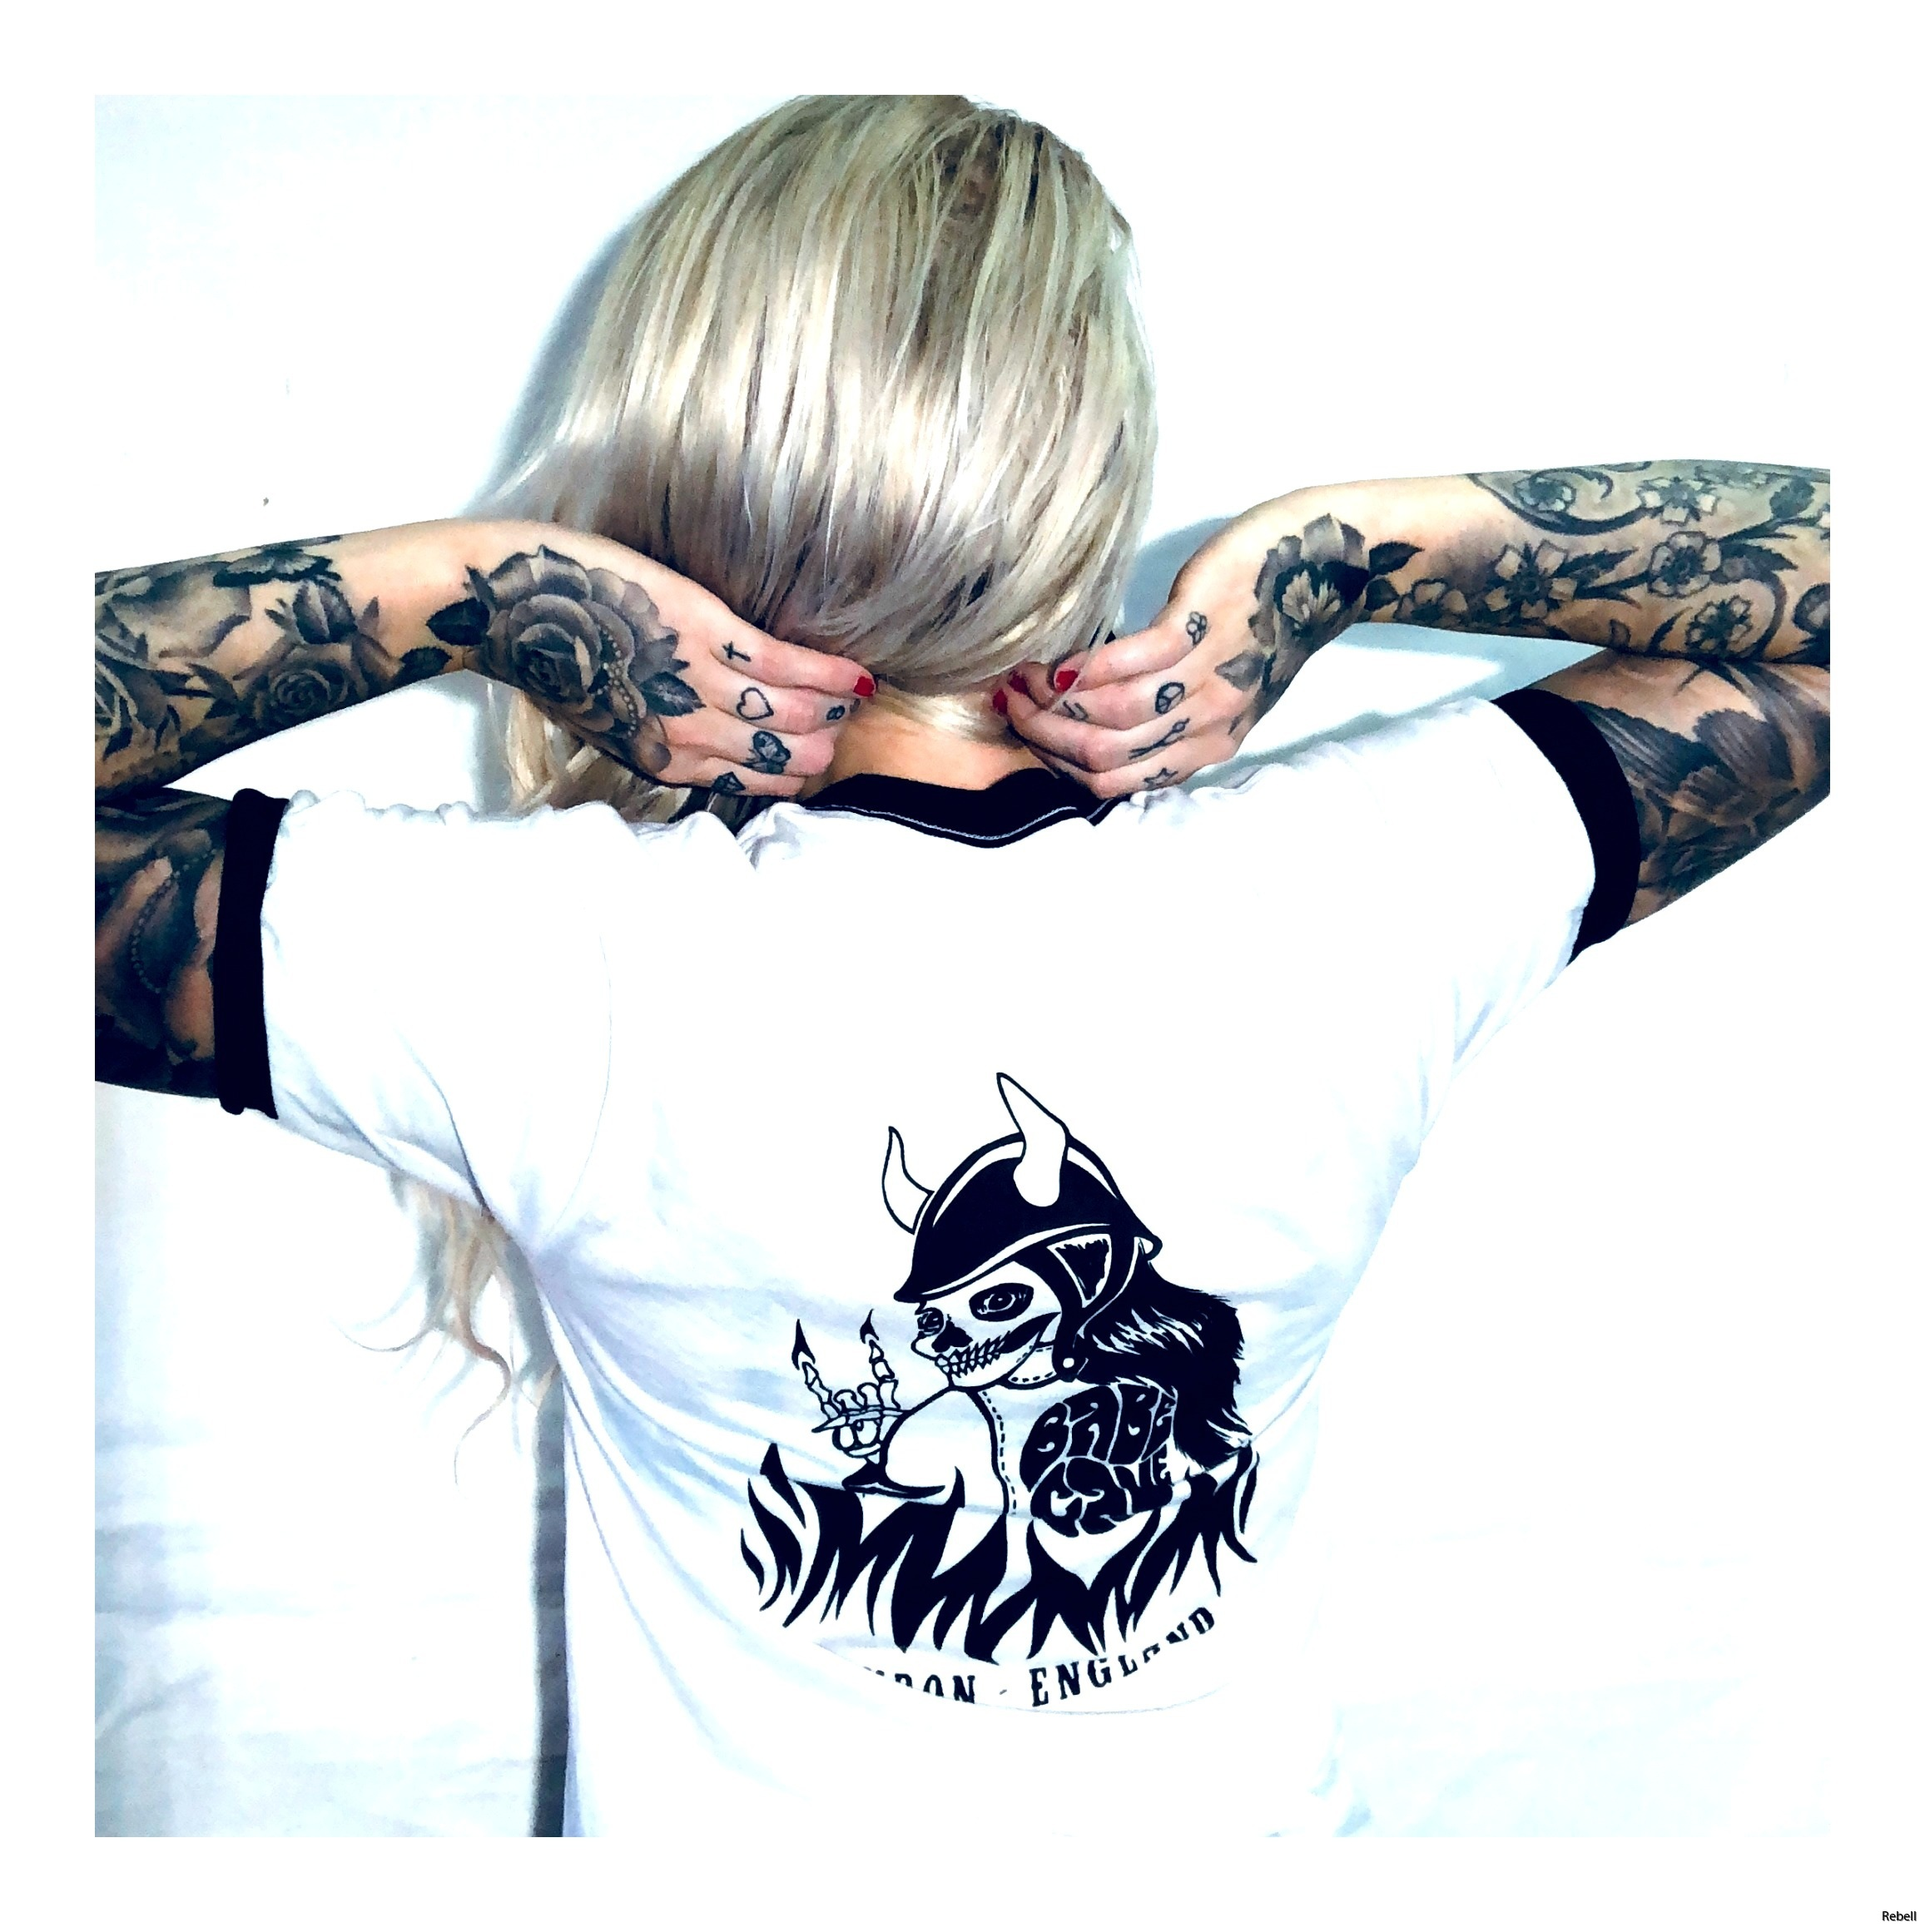 hell bc london longwaybackfromhell rebell tshirt skövde rebellclothes londonclothes skull riding with her